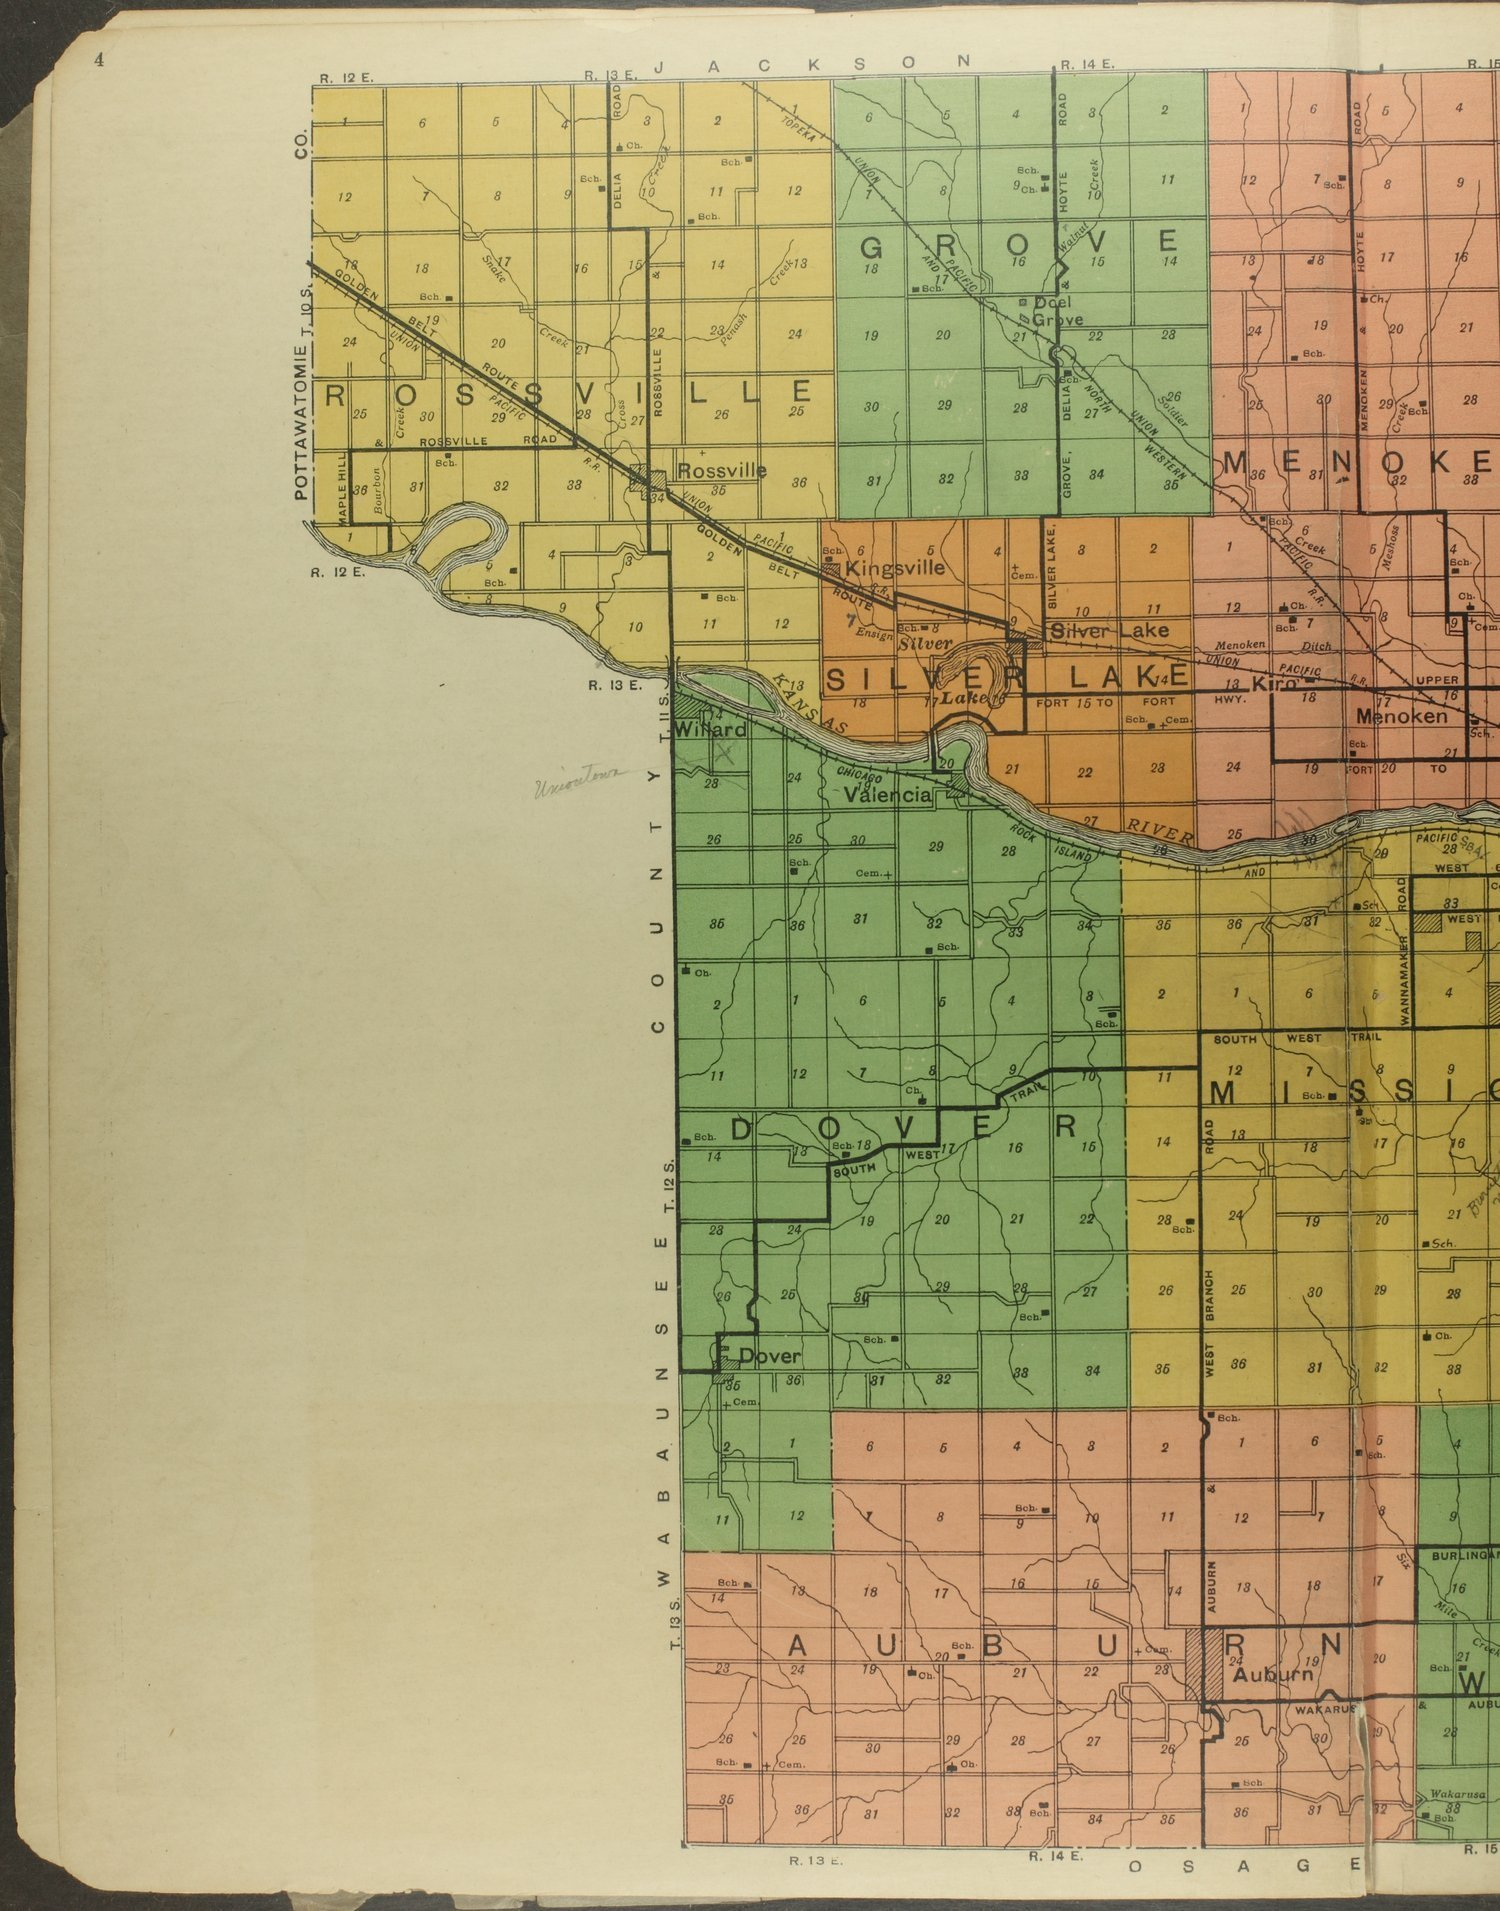 Atlas and plat book of Shawnee County, Kansas - 4